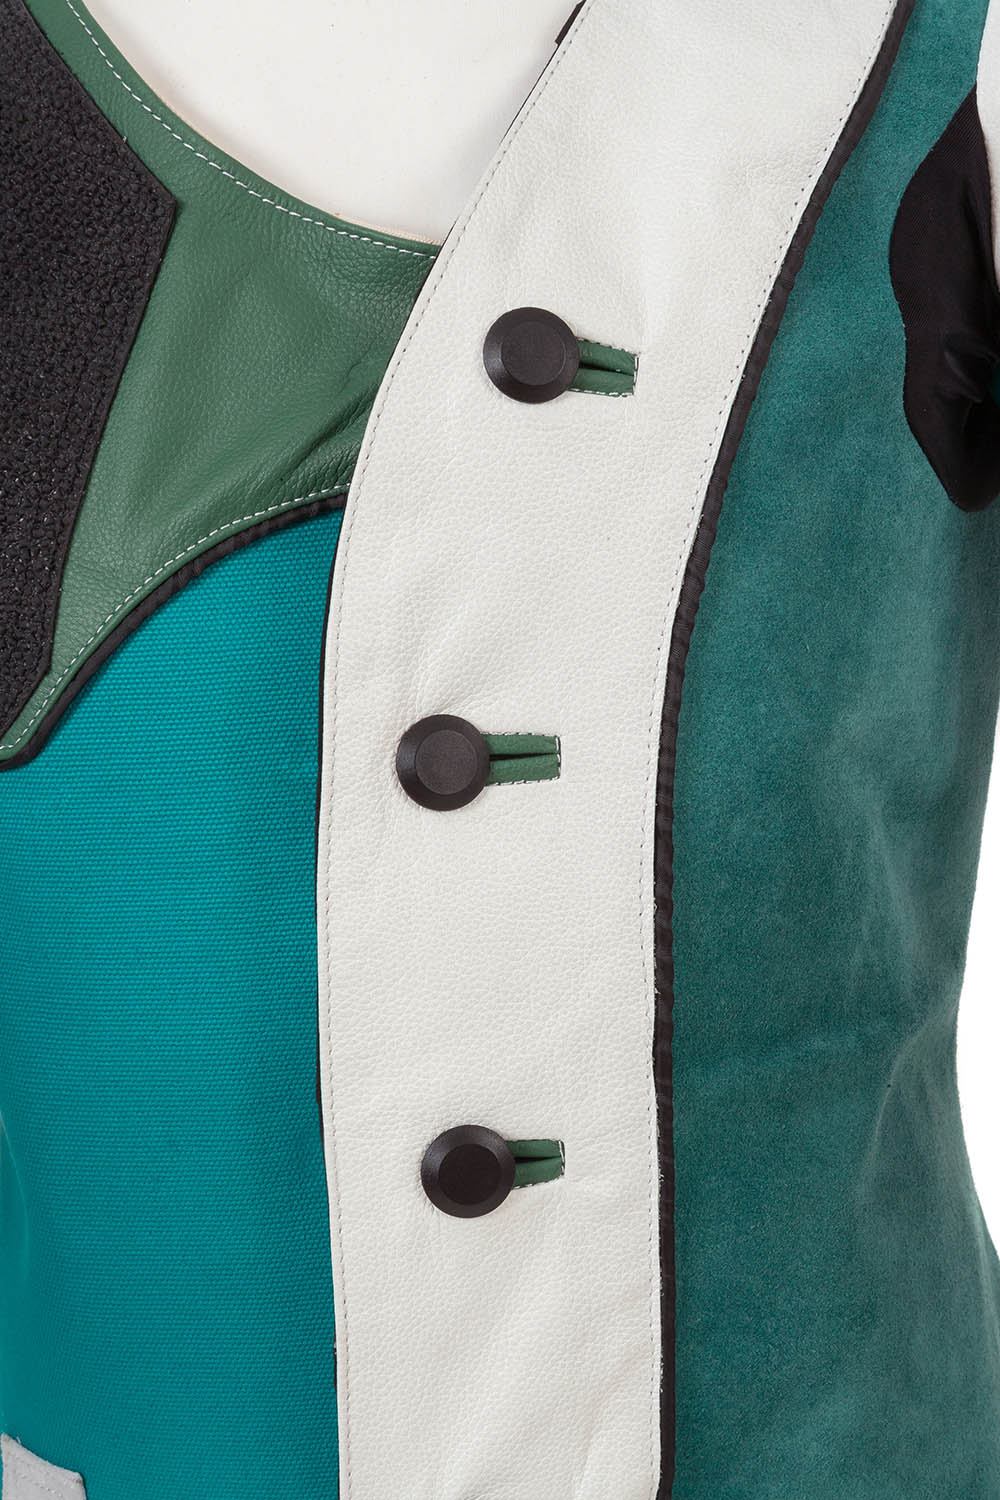 Heavy-duty button fastenings and leather reinforced button holes - Centaur Match 19 Double Canvas and Leather Target Shooting Jacket